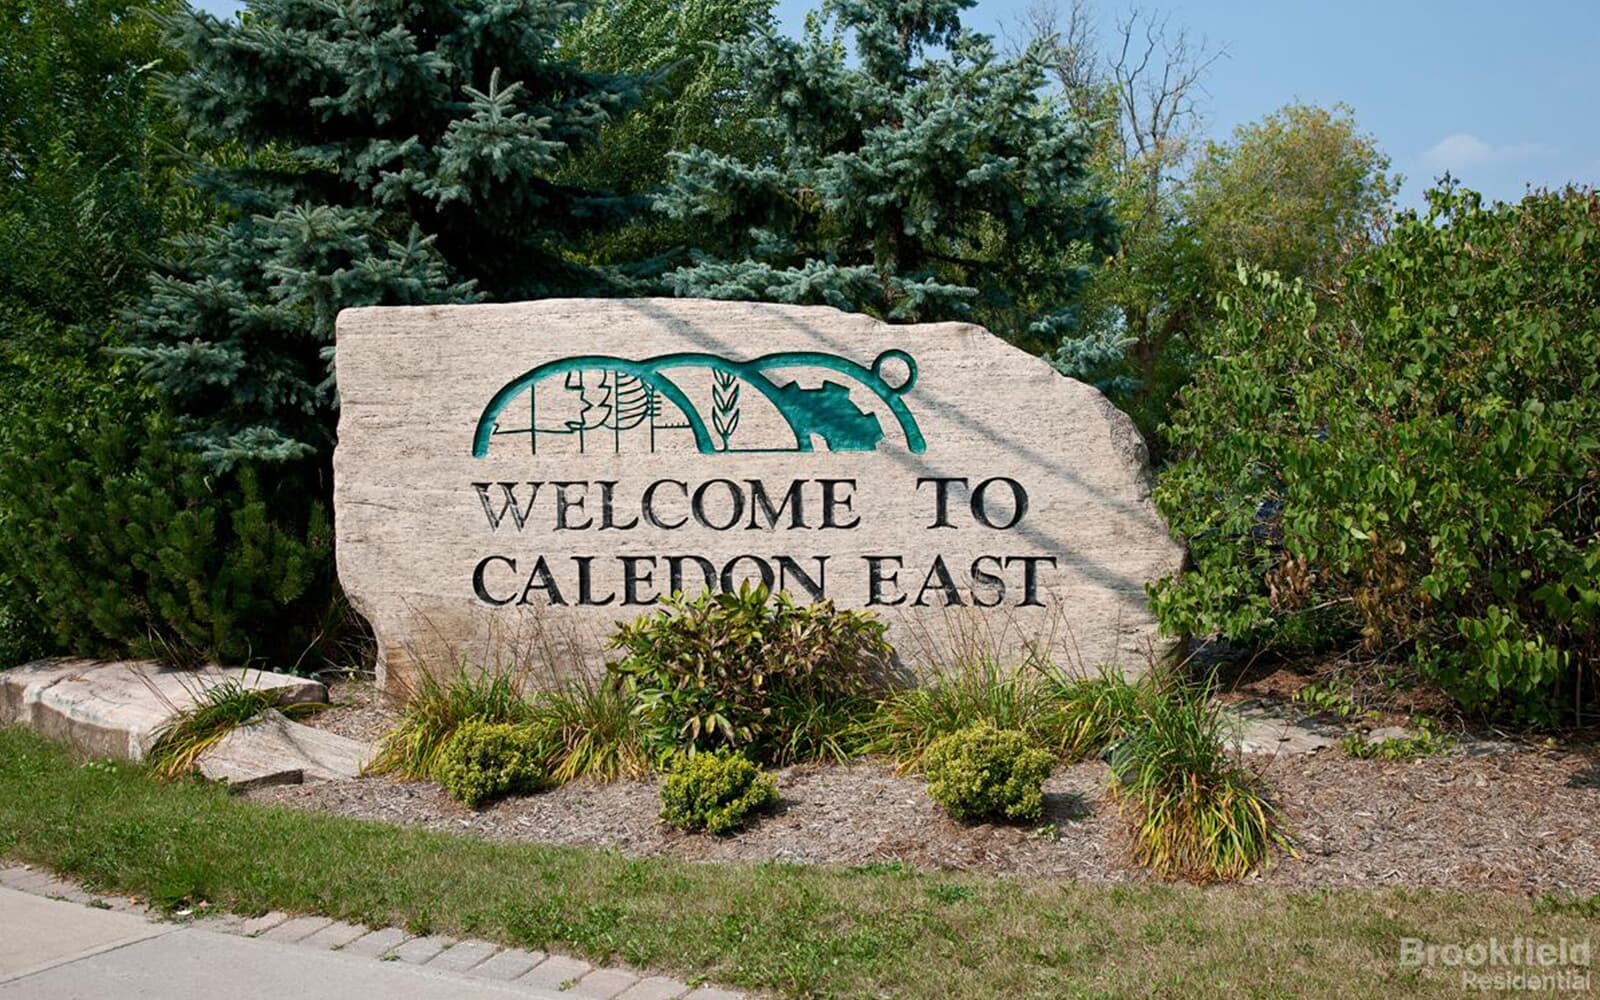 Welcome to Caledon East engraved stone in Caledon East, ON